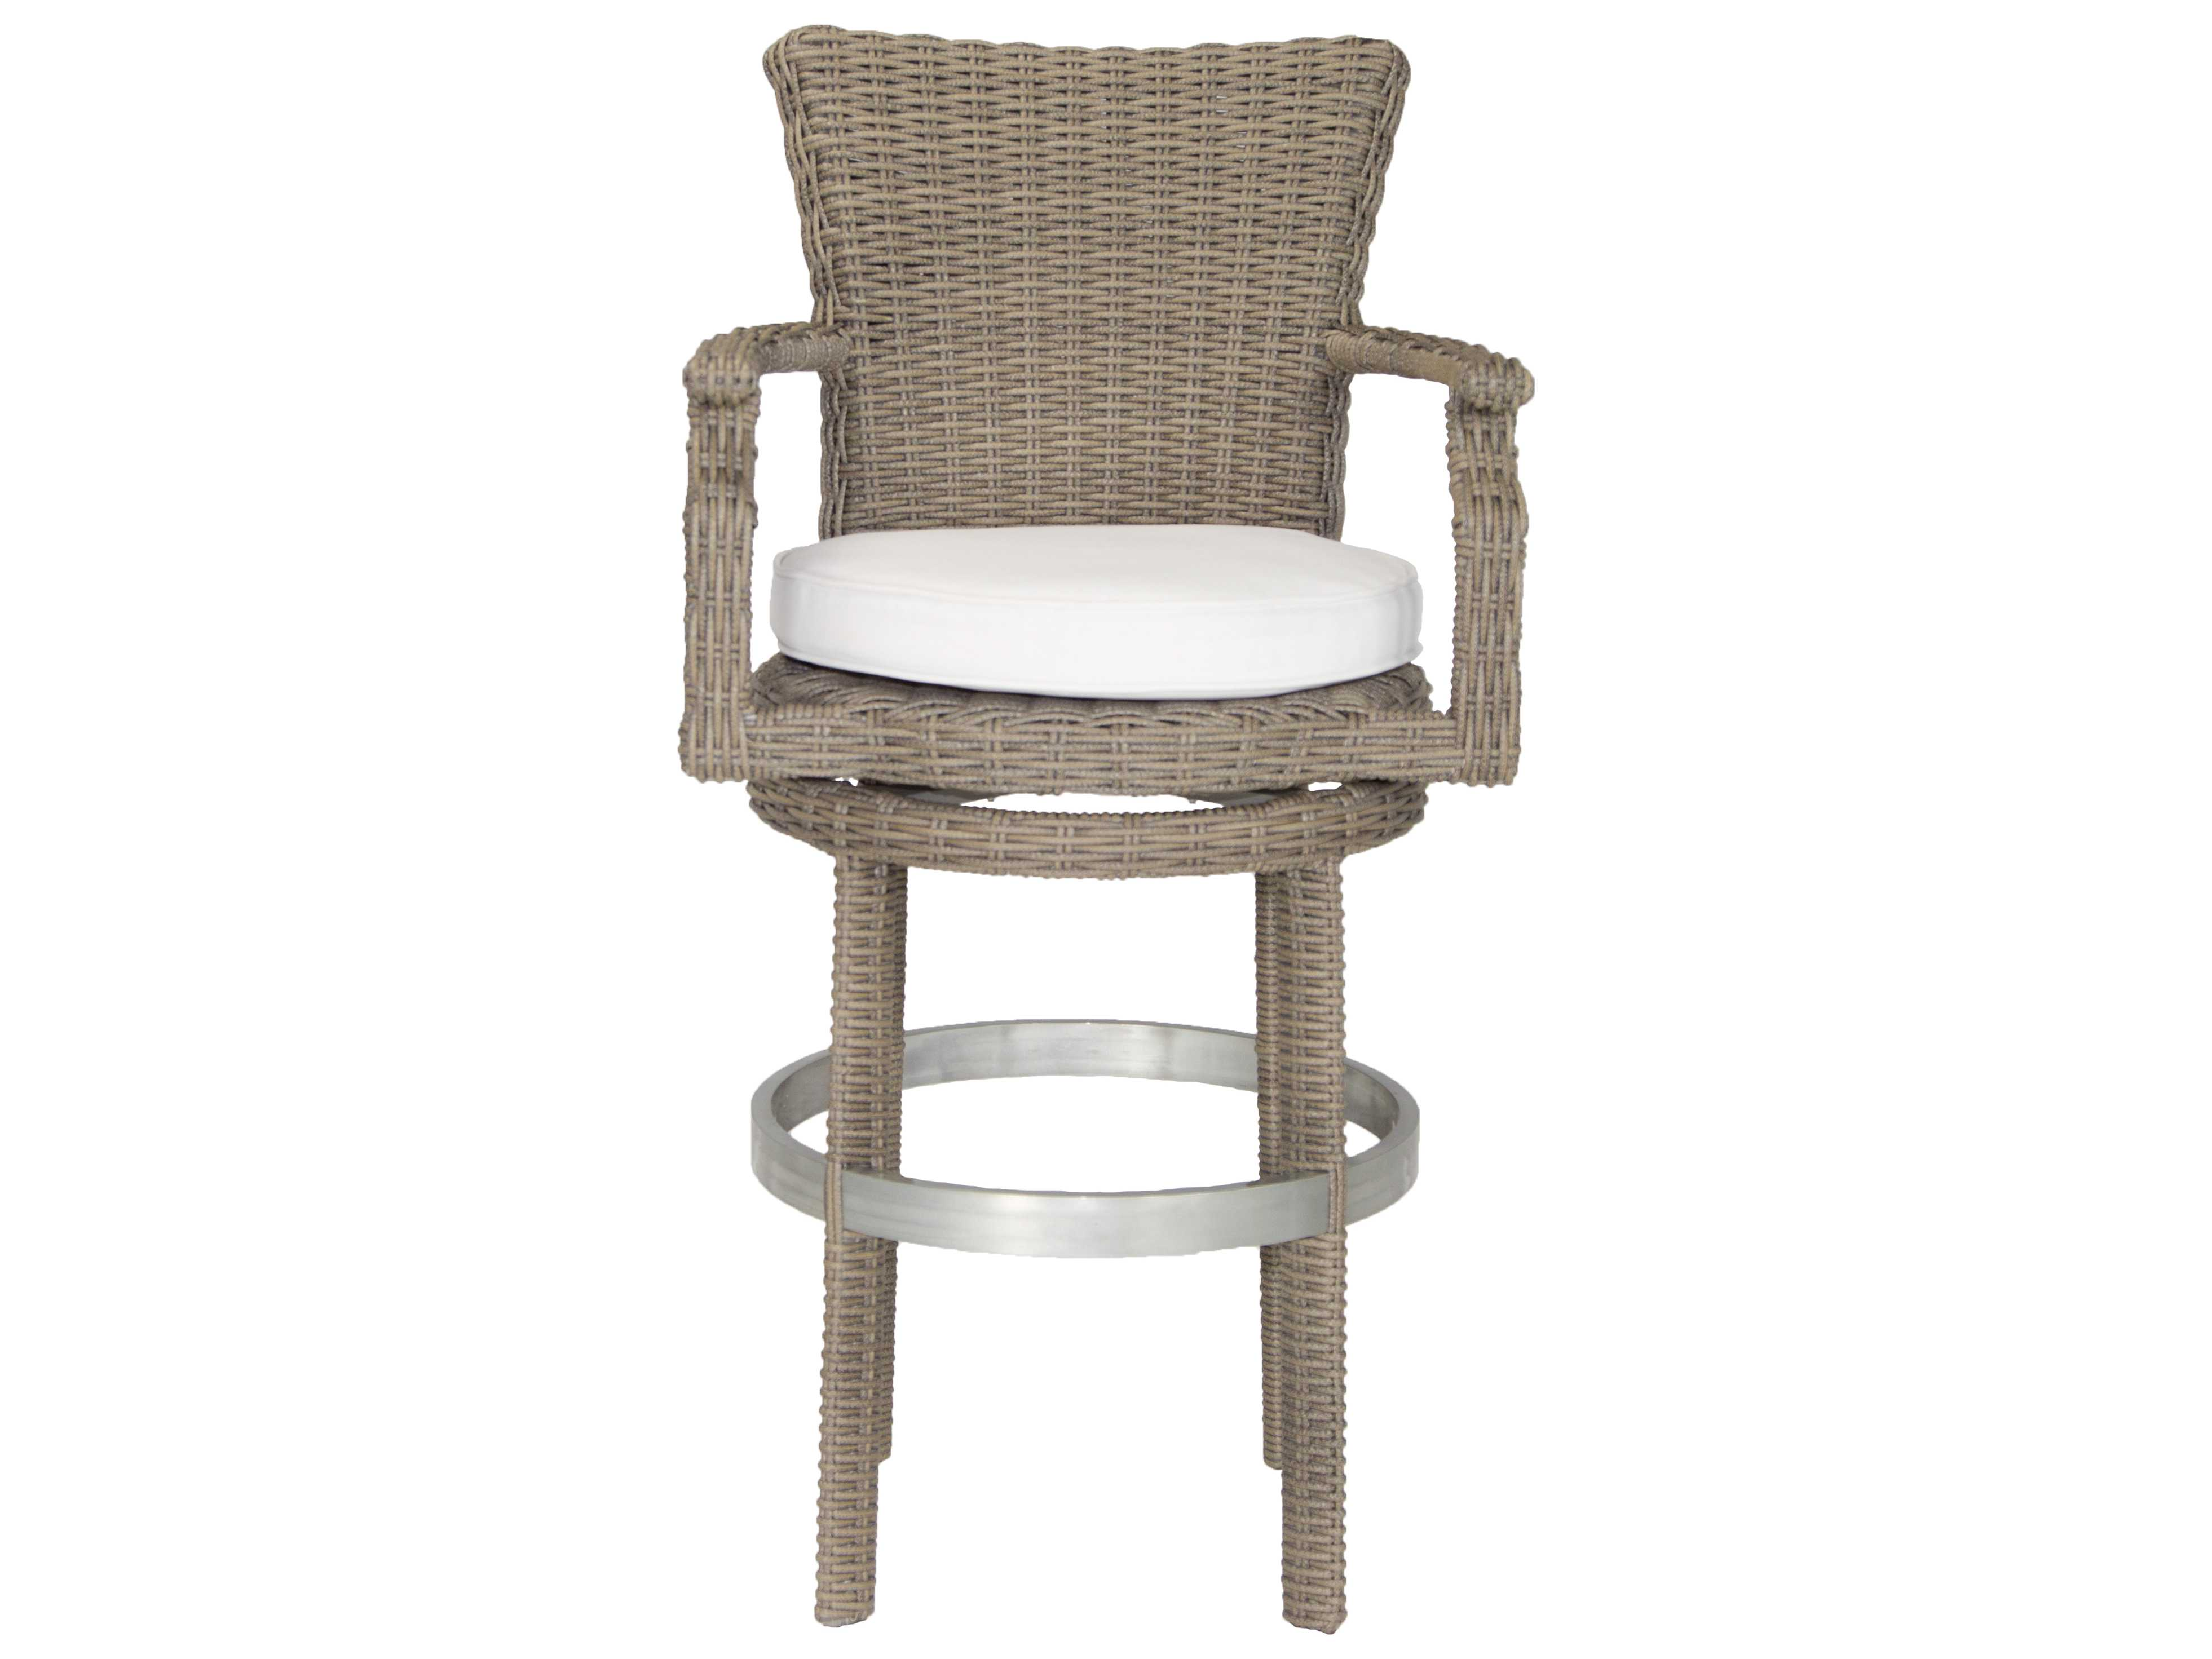 Marvelous photograph of Patio Heaven Palisades Wicker Swivel Bar Stool WP RBSBH GSR with #7A7A51 color and 3923x2943 pixels